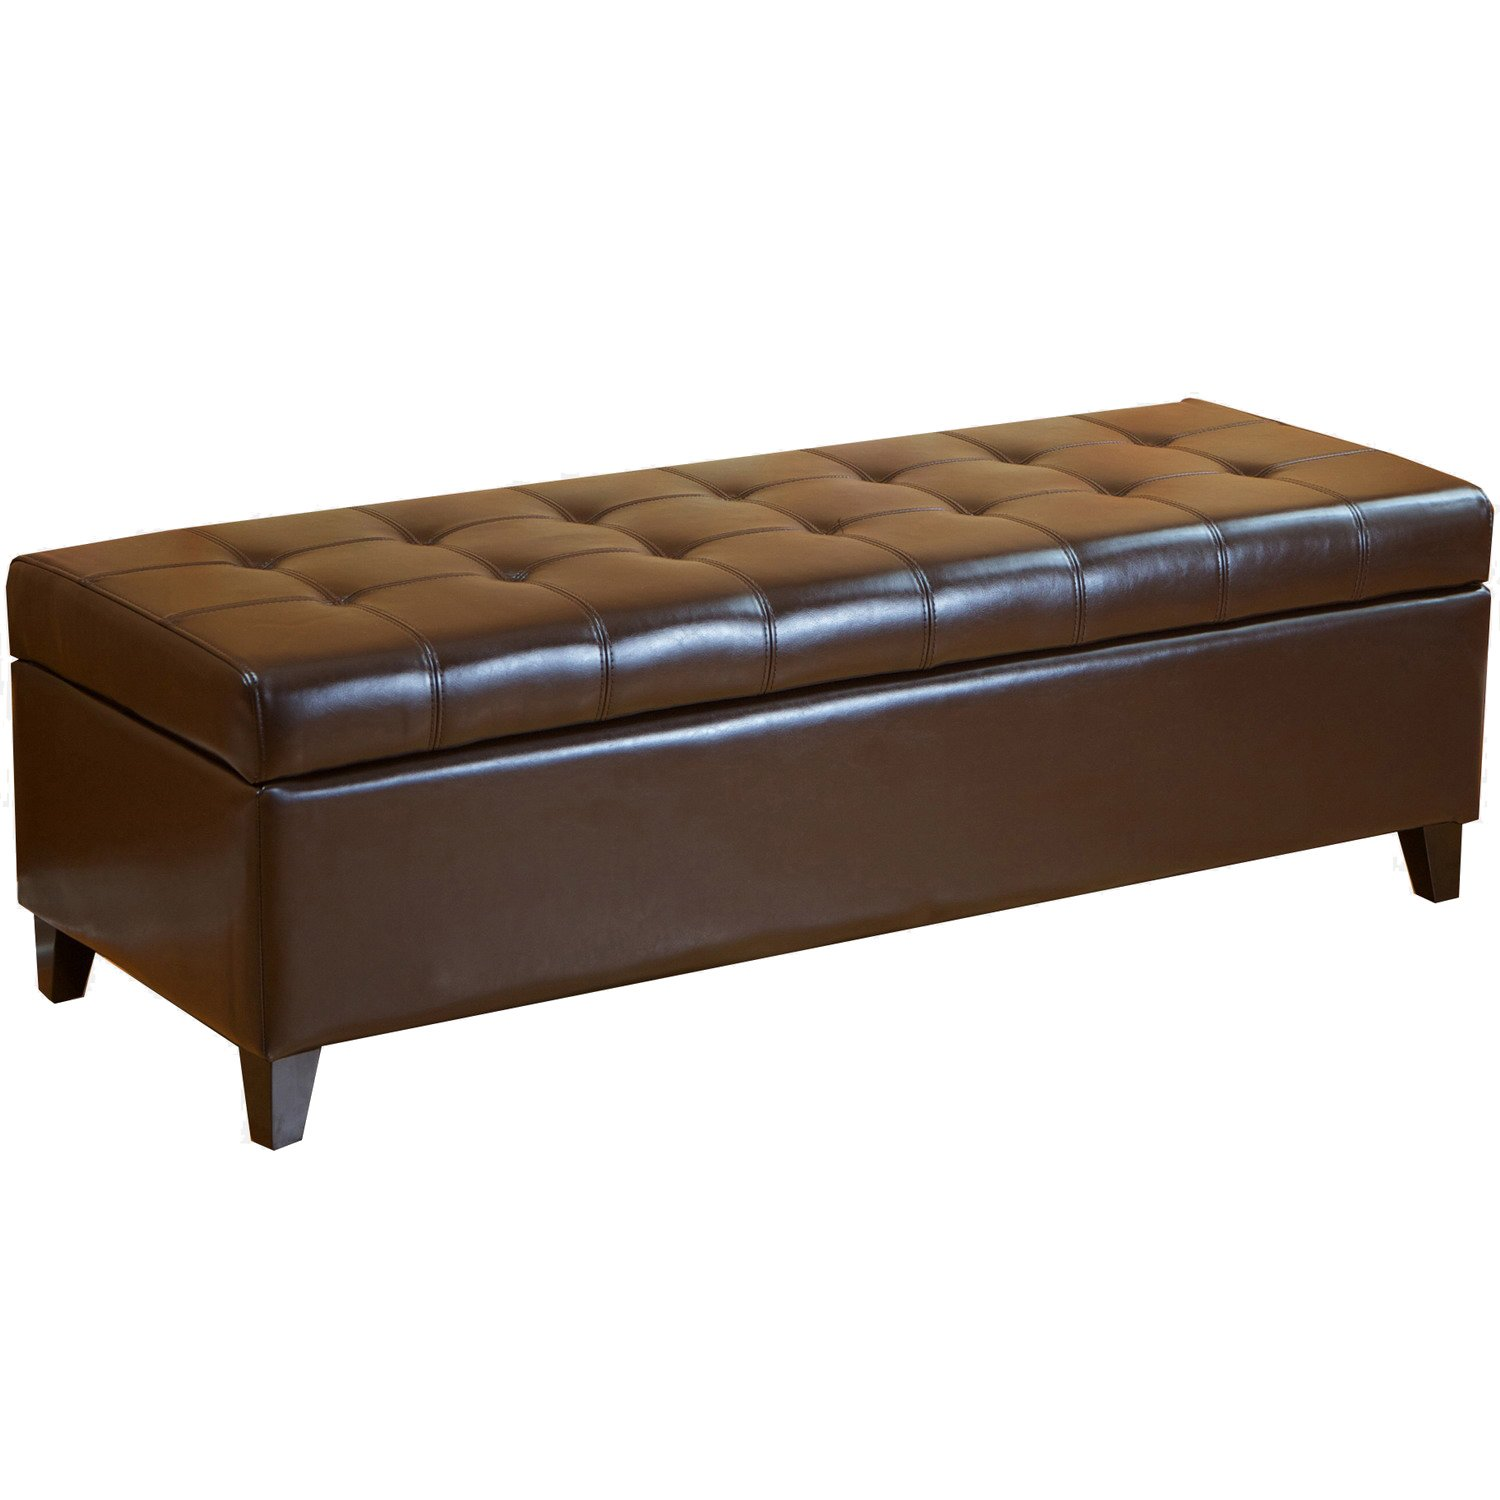 End of bed storage benches ottomans and chests olivia 39 s place Bed benches